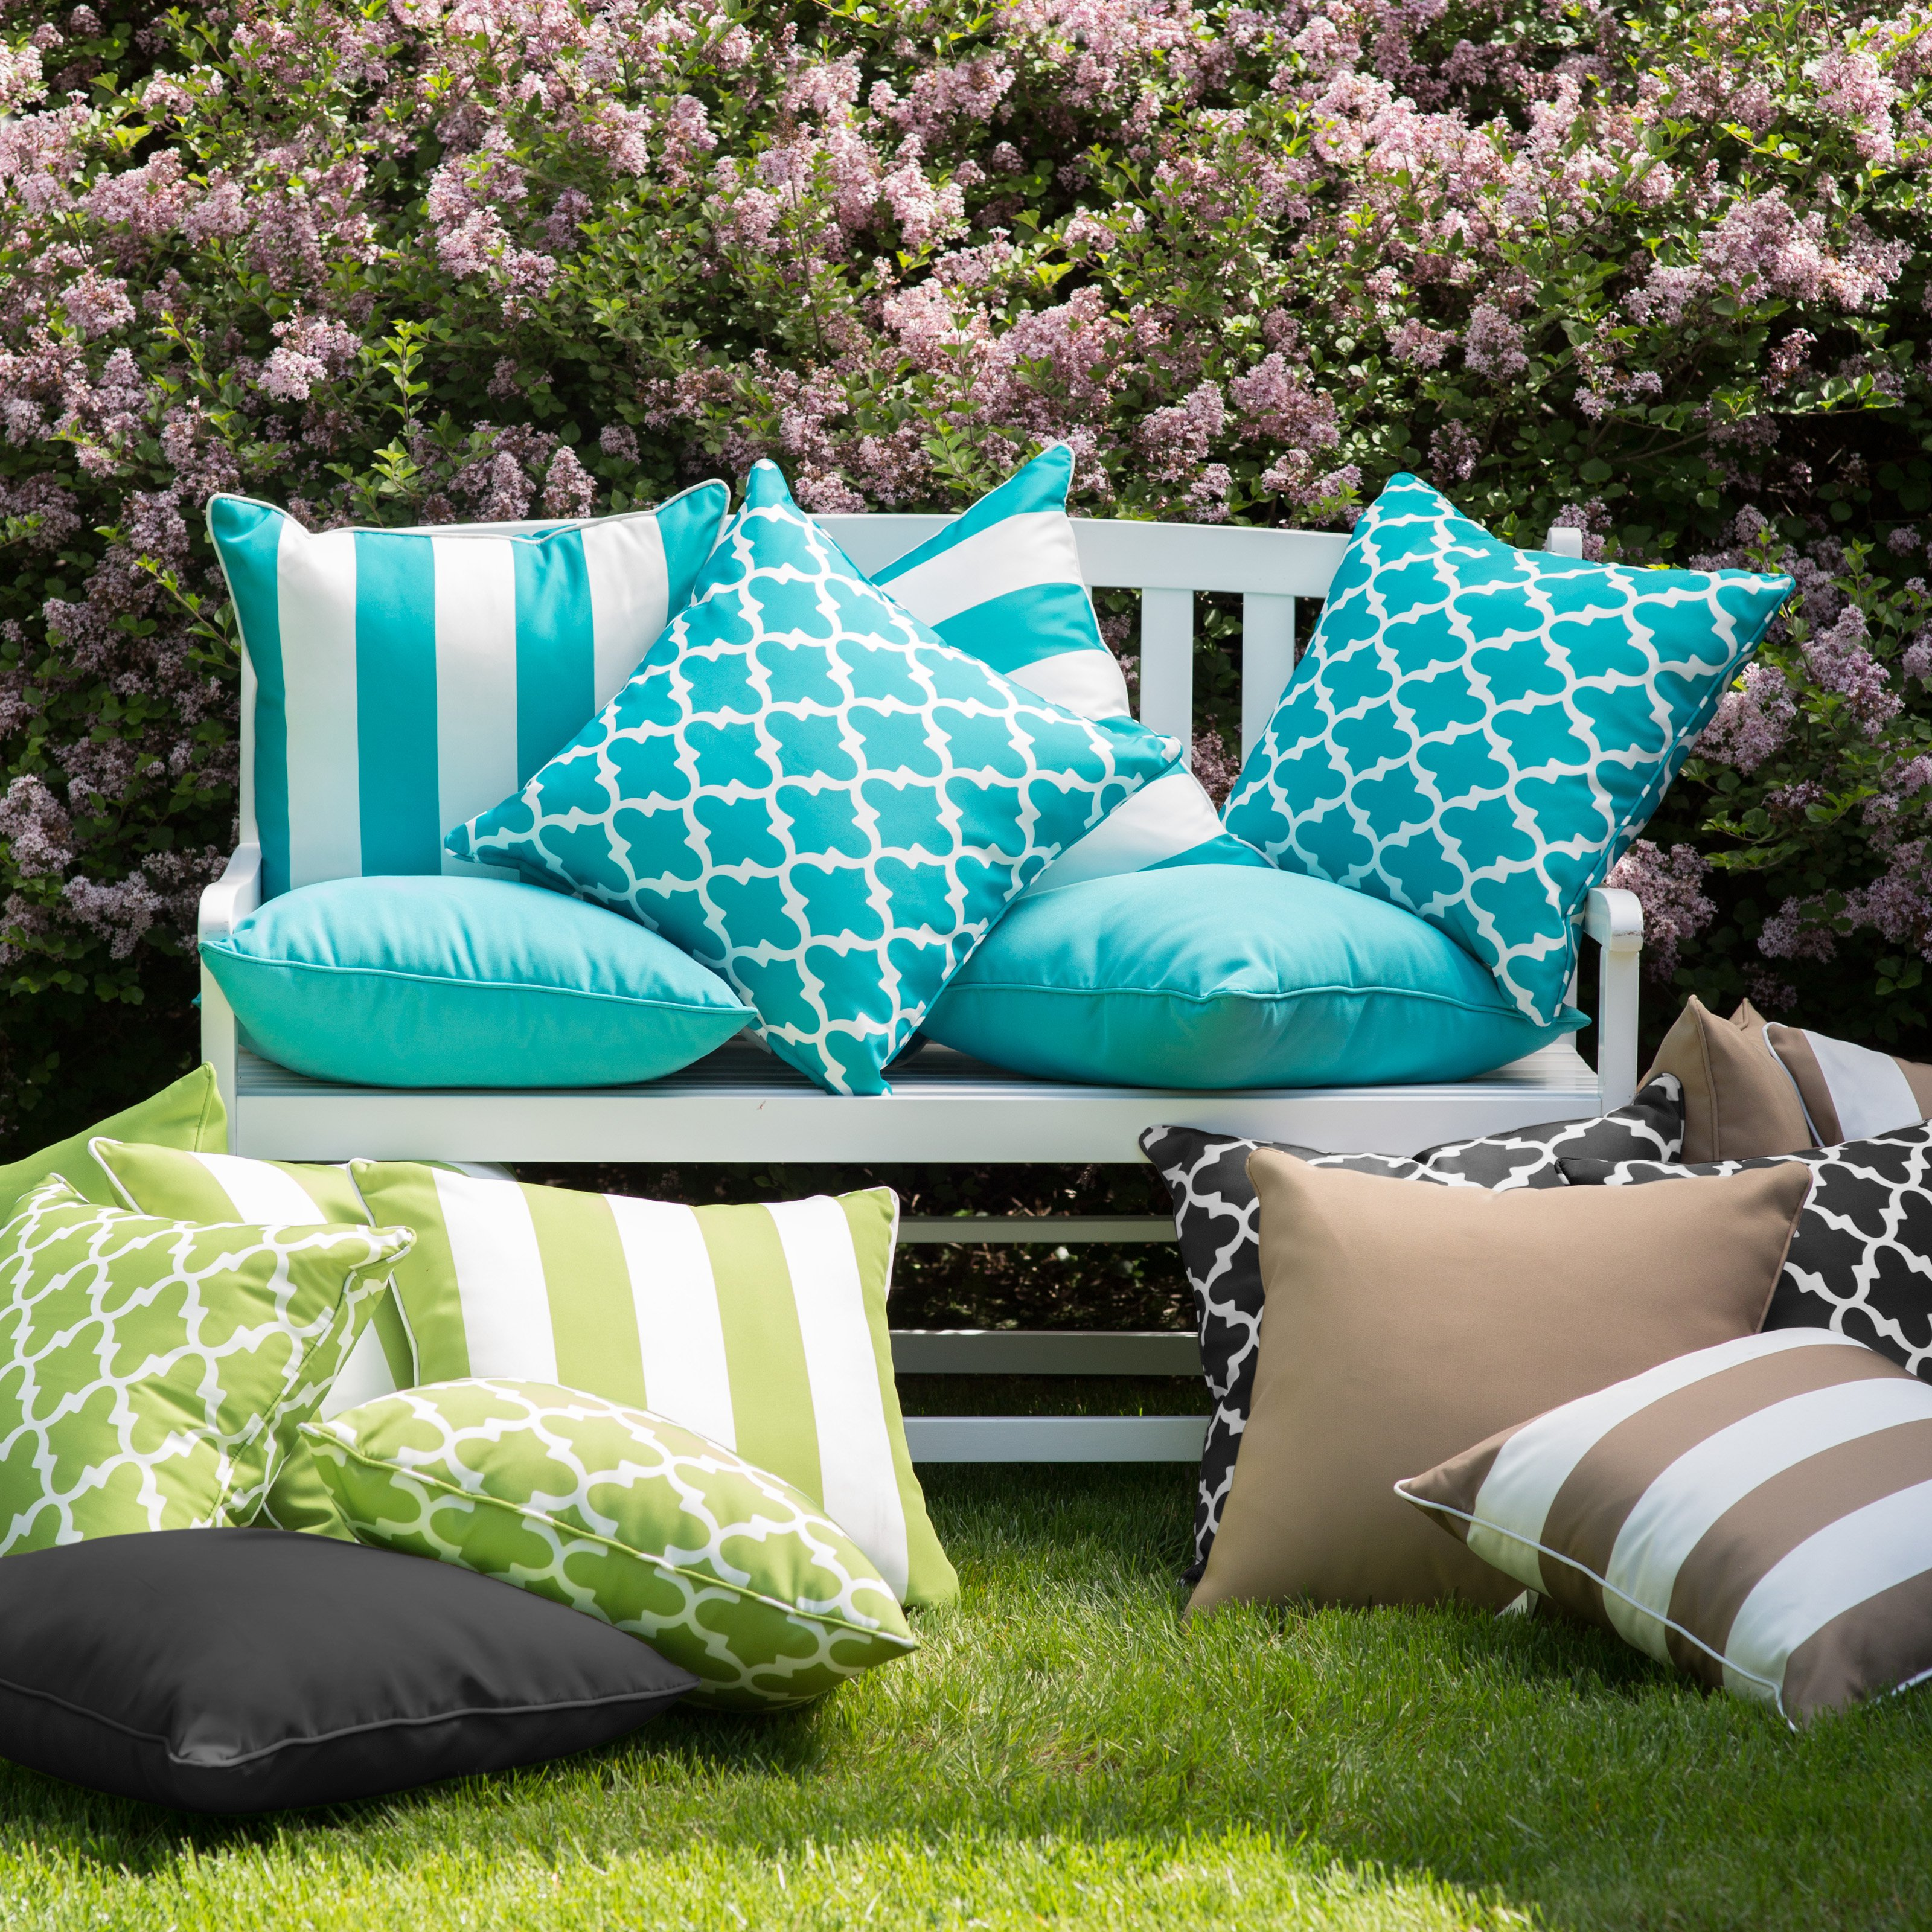 Outdoor Pillows for Elegant Decor and Added Comfort